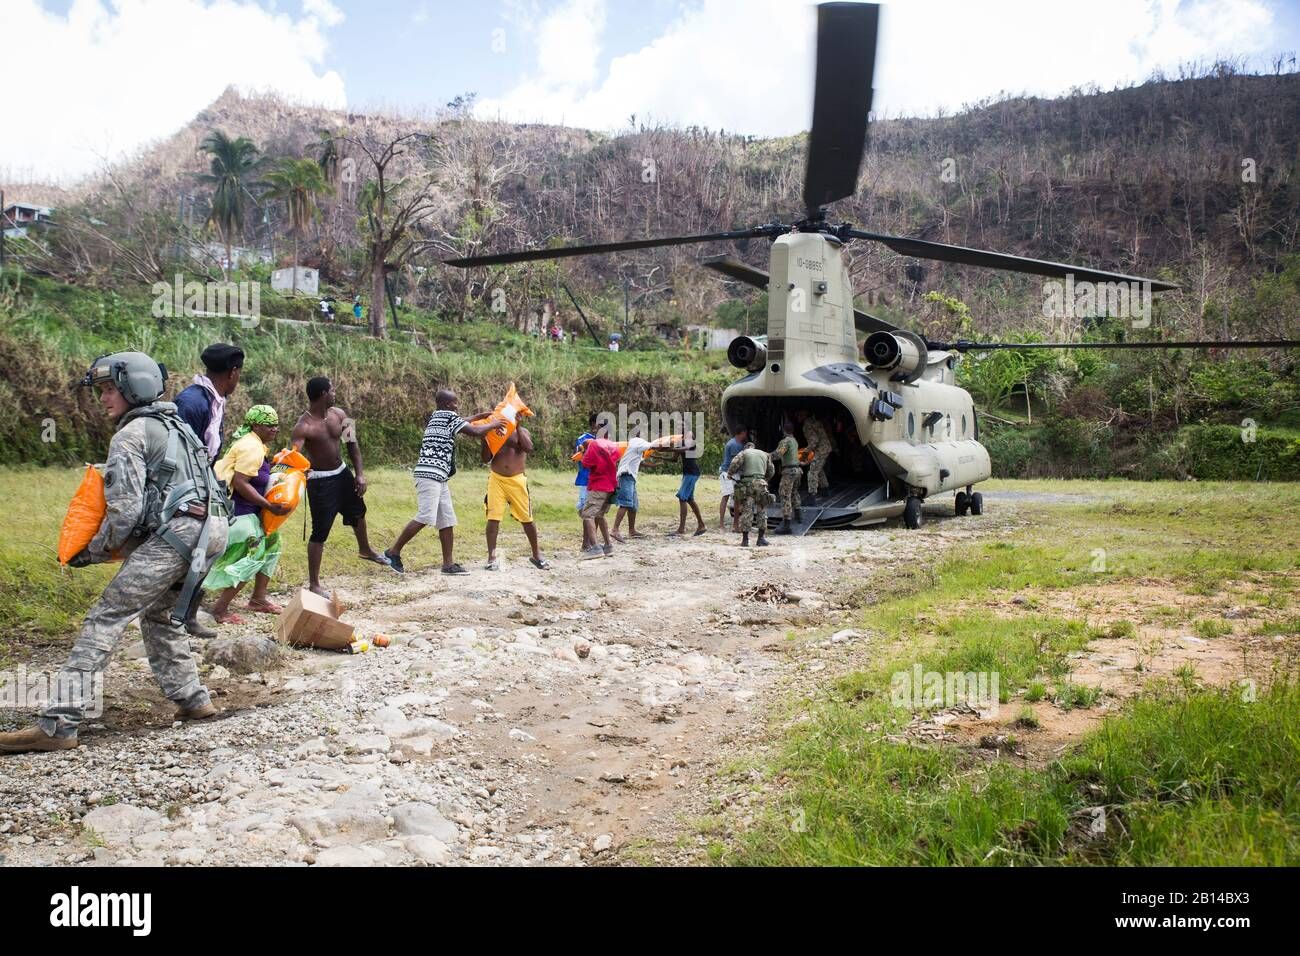 U.S. Army Sgt. Delton Reynolds, left, a flight engineer with Joint Task Force - Leeward Islands, joins a chain with local residents and members of the Jamaican Defence Force to unload relief supplies from a CH-47 Chinook helicopter at Wotten Waven, Dominica, Oct. 3, 2017. The aircraft delivered rice and kitchen sets from the U.S. Agency for International Development to the community. At the request of USAID, JTF-LI has deployed aircraft and service members to assist in delivering relief supplies to Dominica in the aftermath of Hurricane Maria. The task force is a U.S. military unit composed of Stock Photo